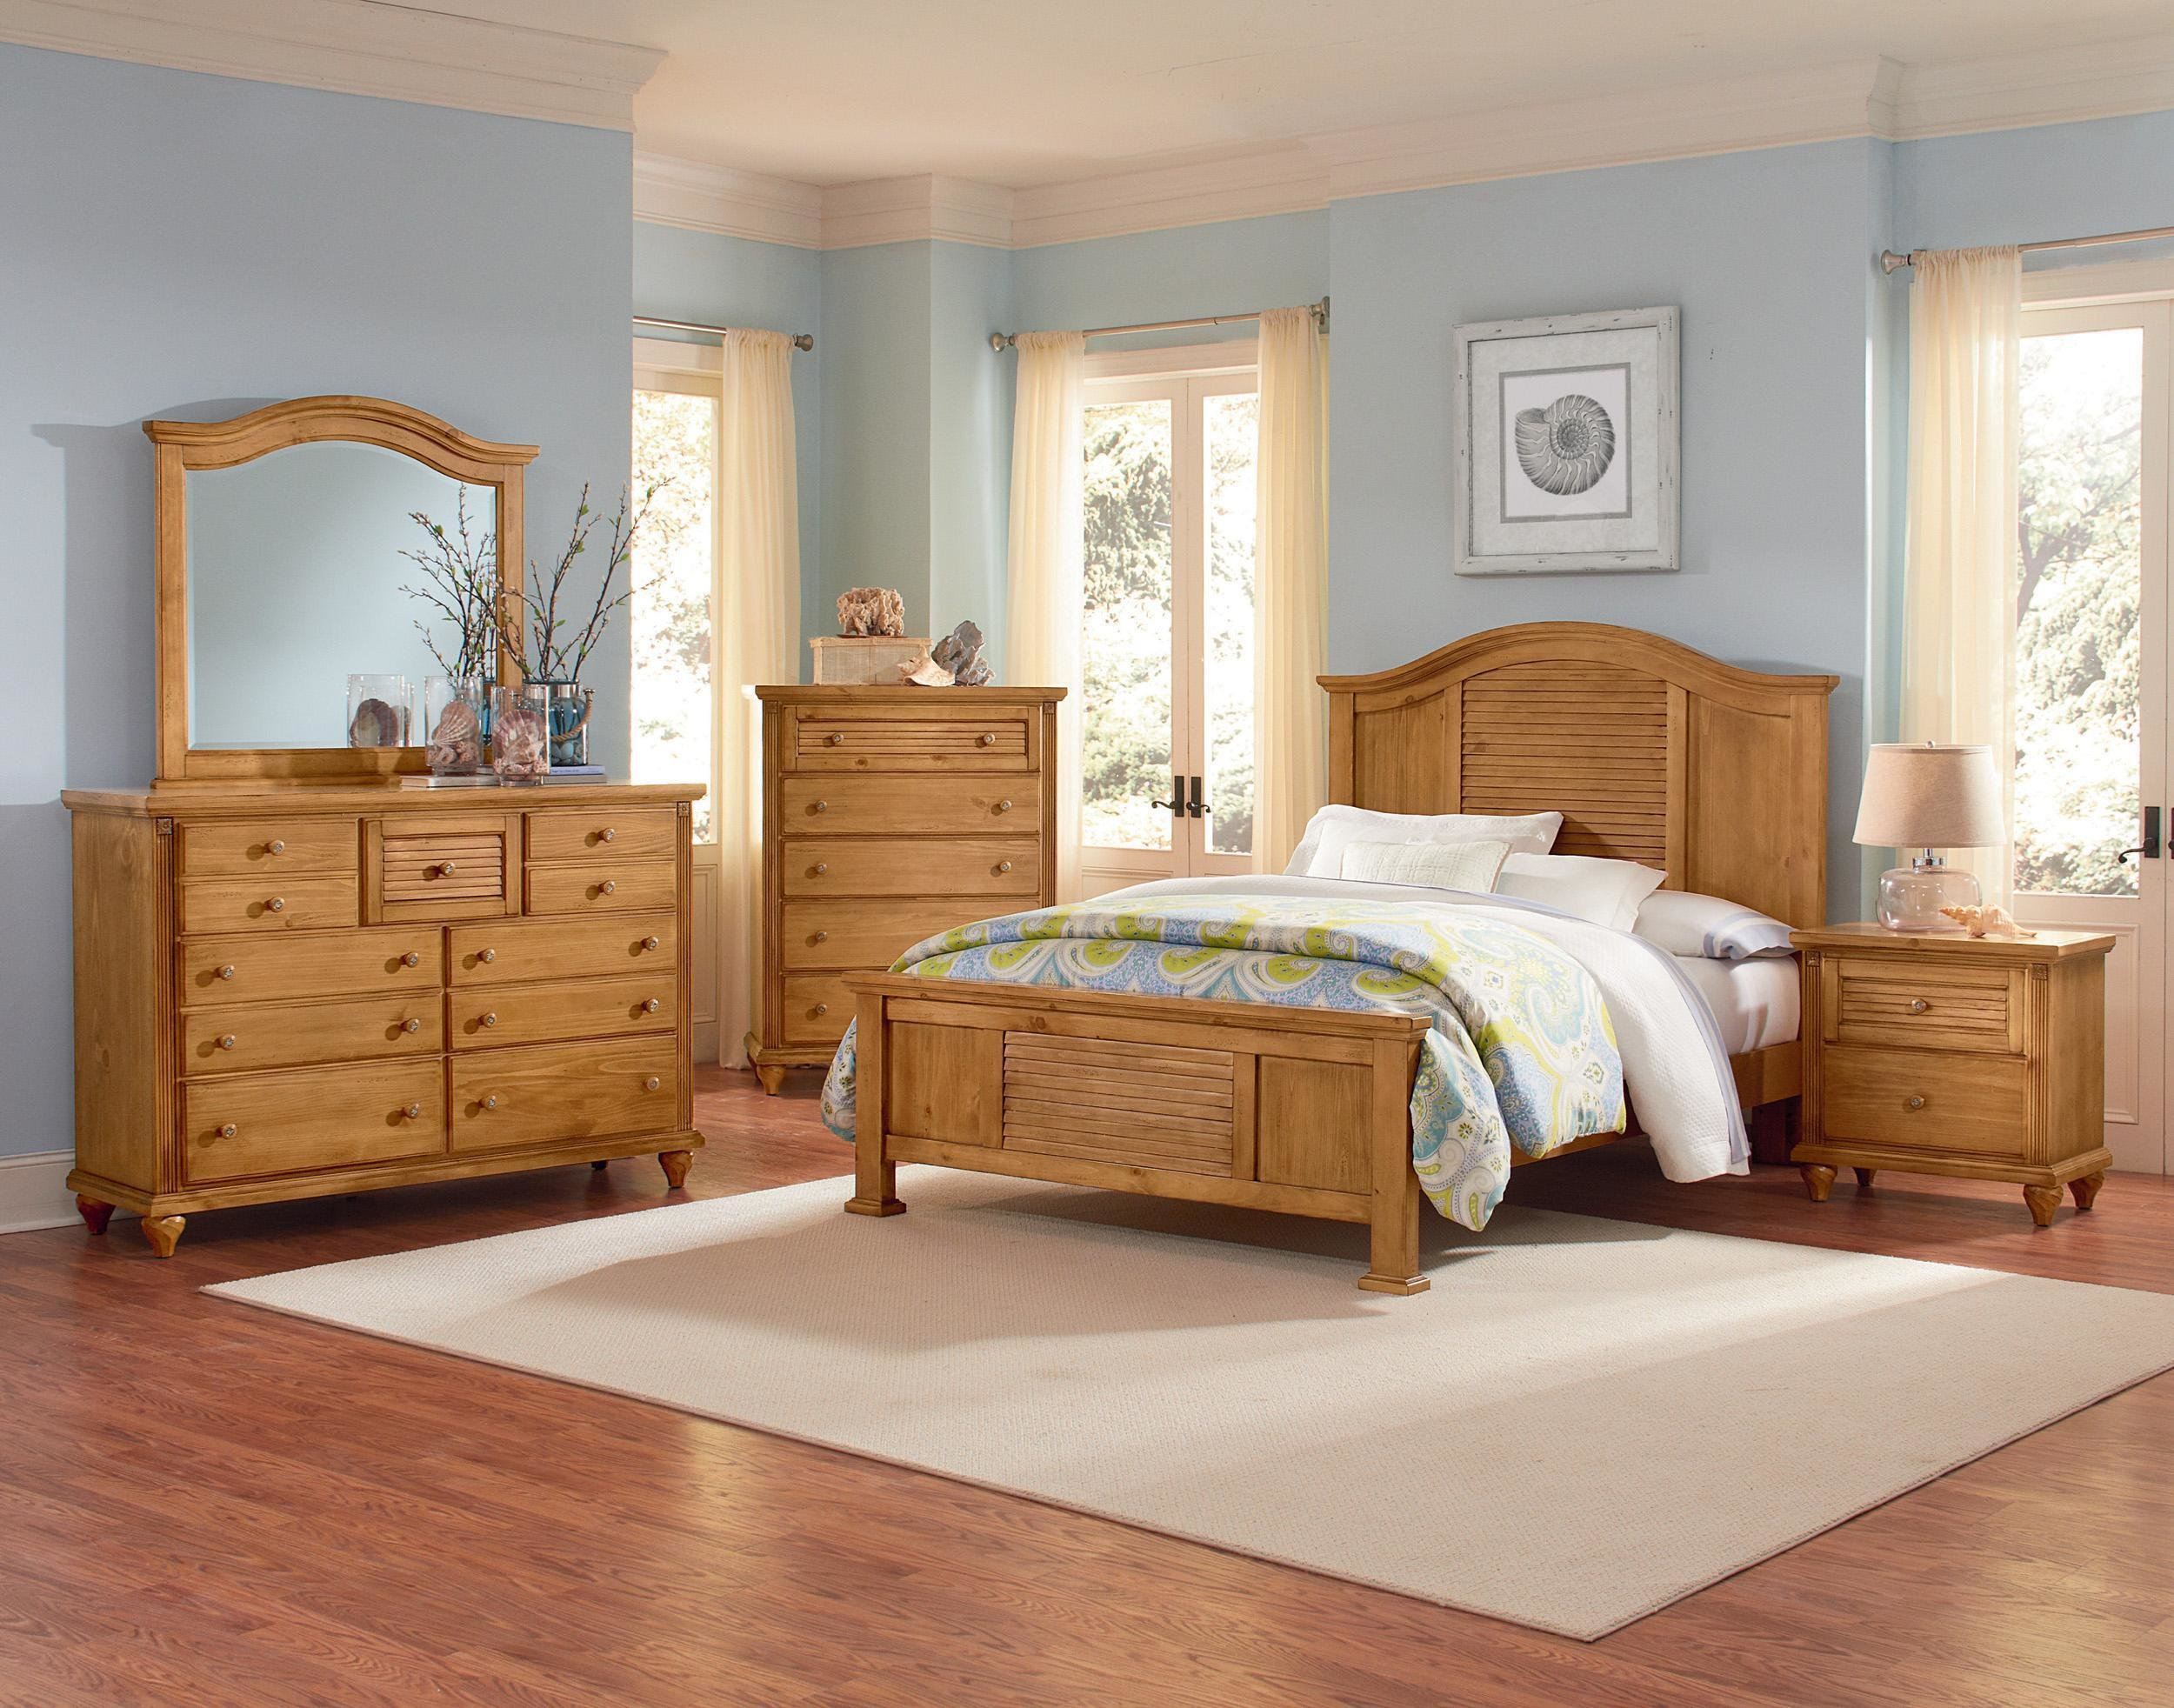 Best Colders Bedroom Sets Buyloxitane Com With Pictures